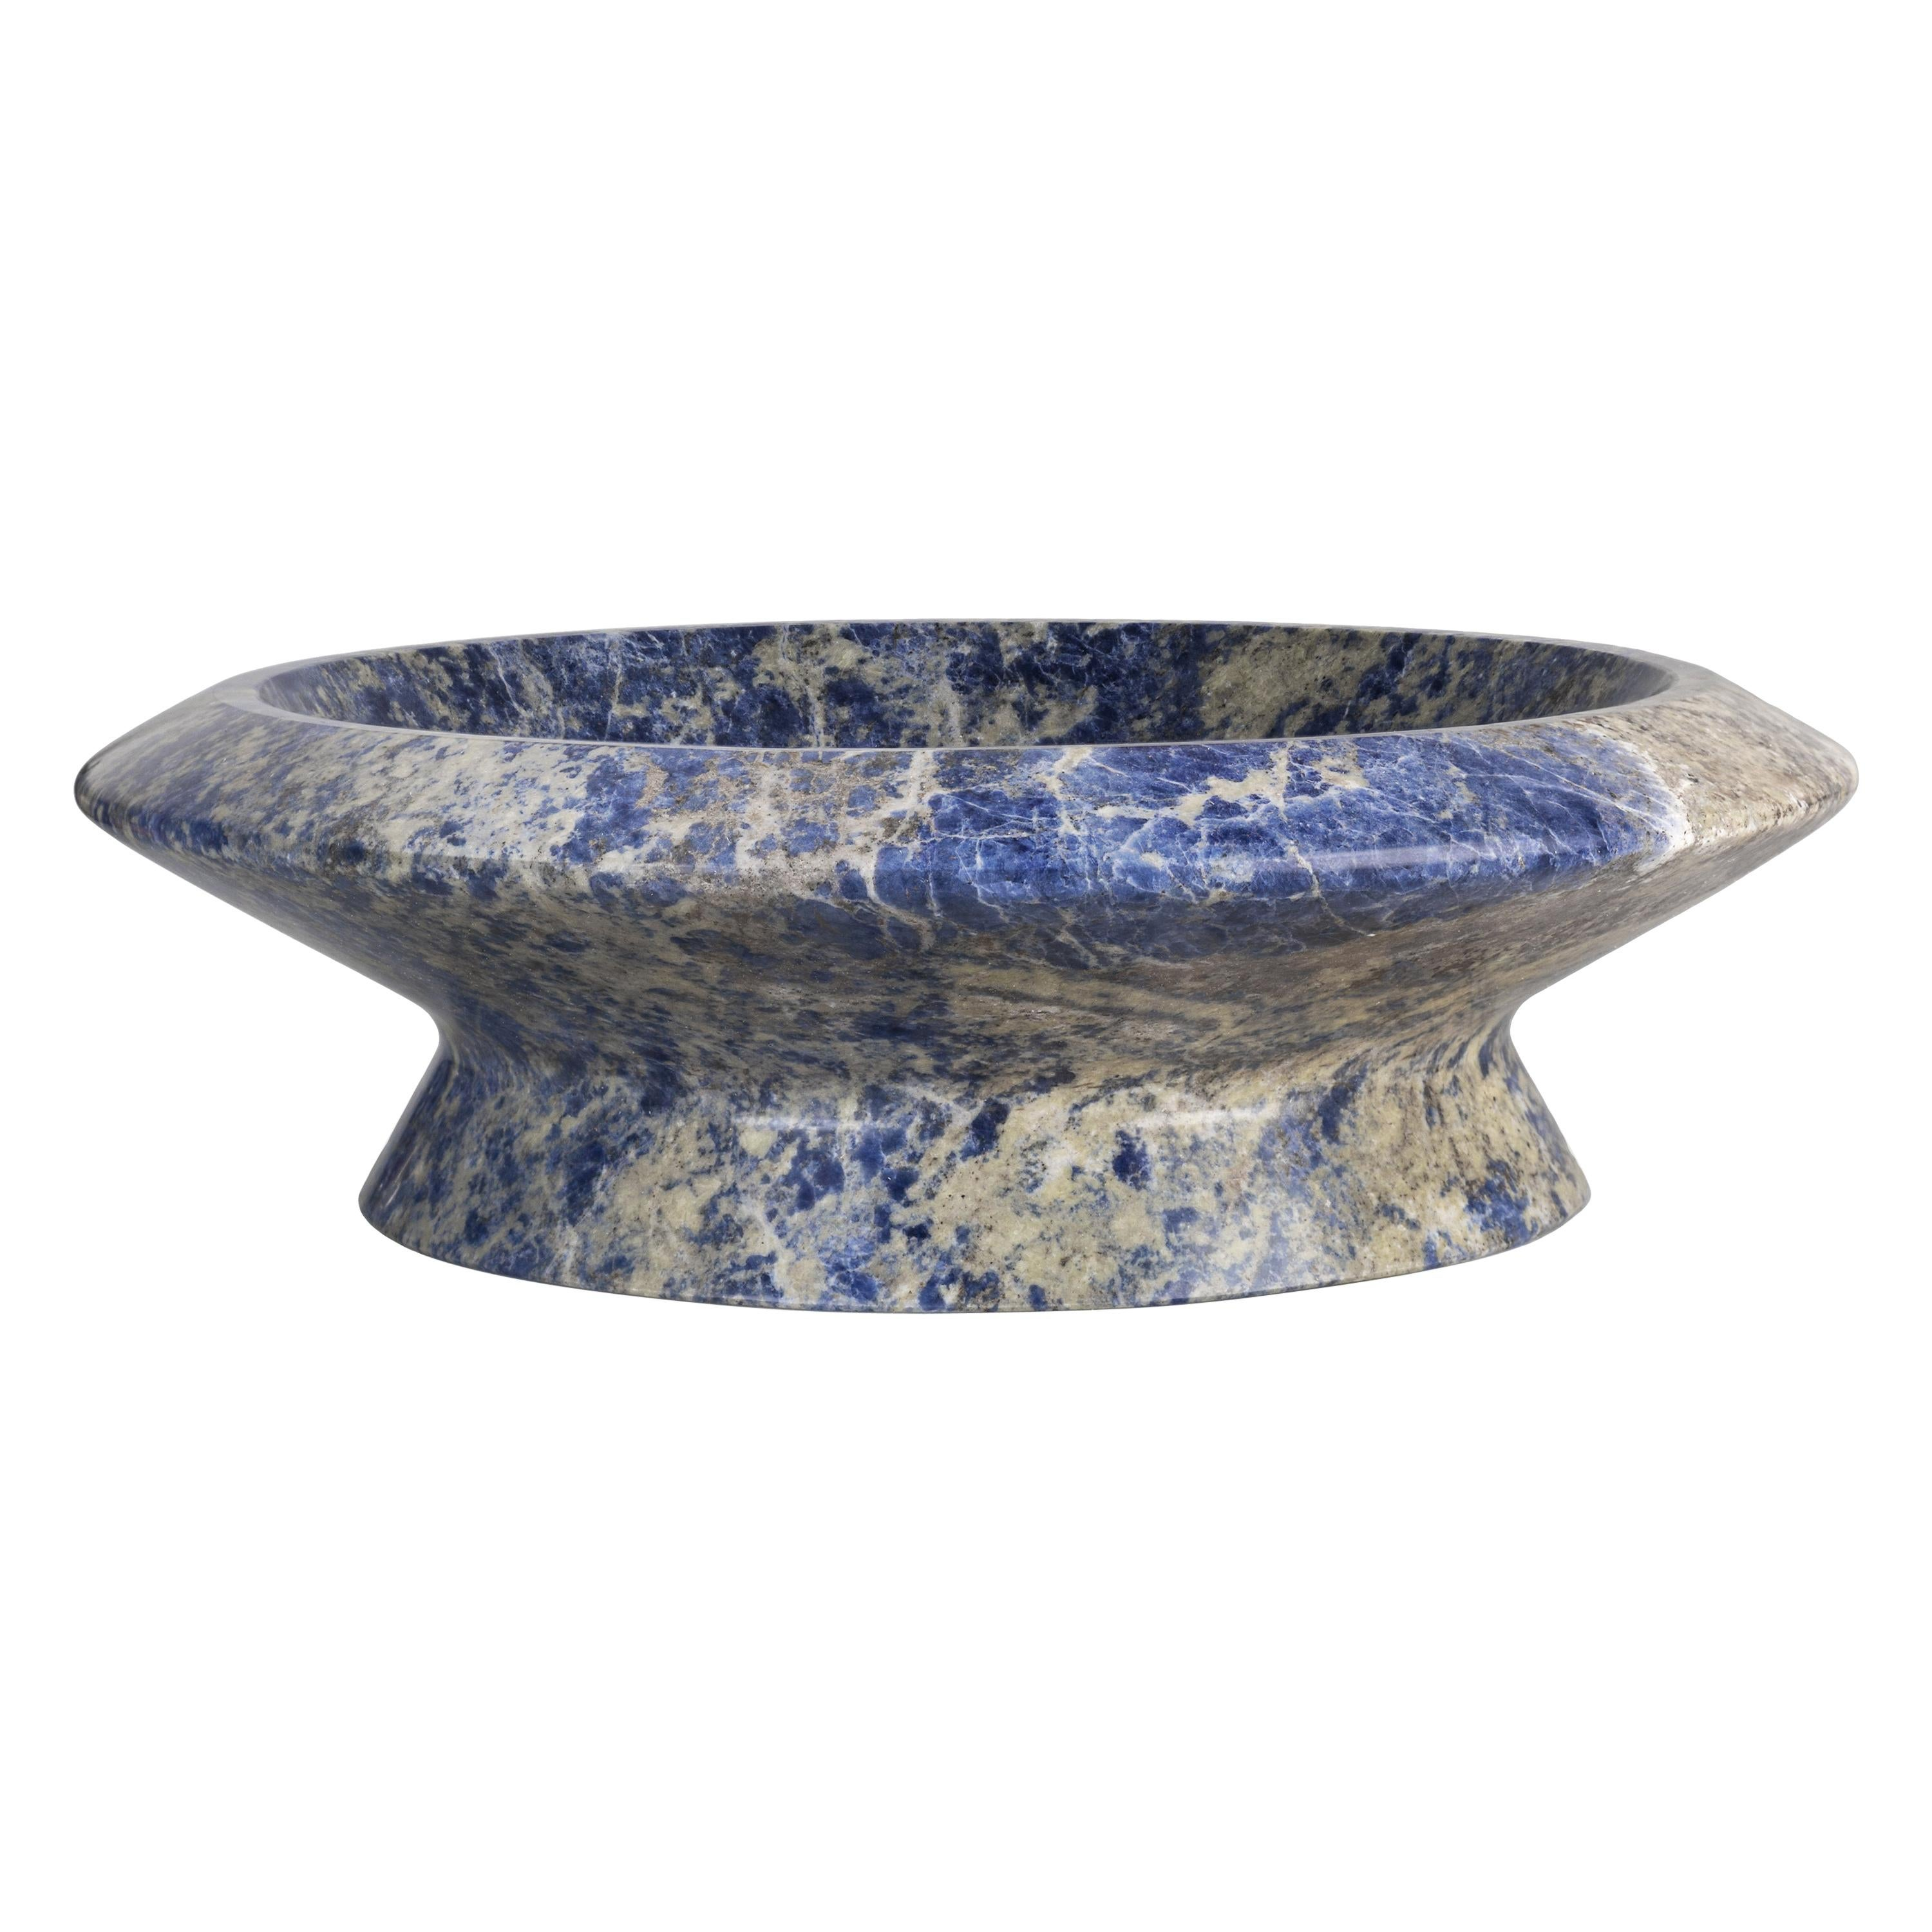 Centrepiece in Blue Sodalite Marble, by Ivan Colominas, Italy